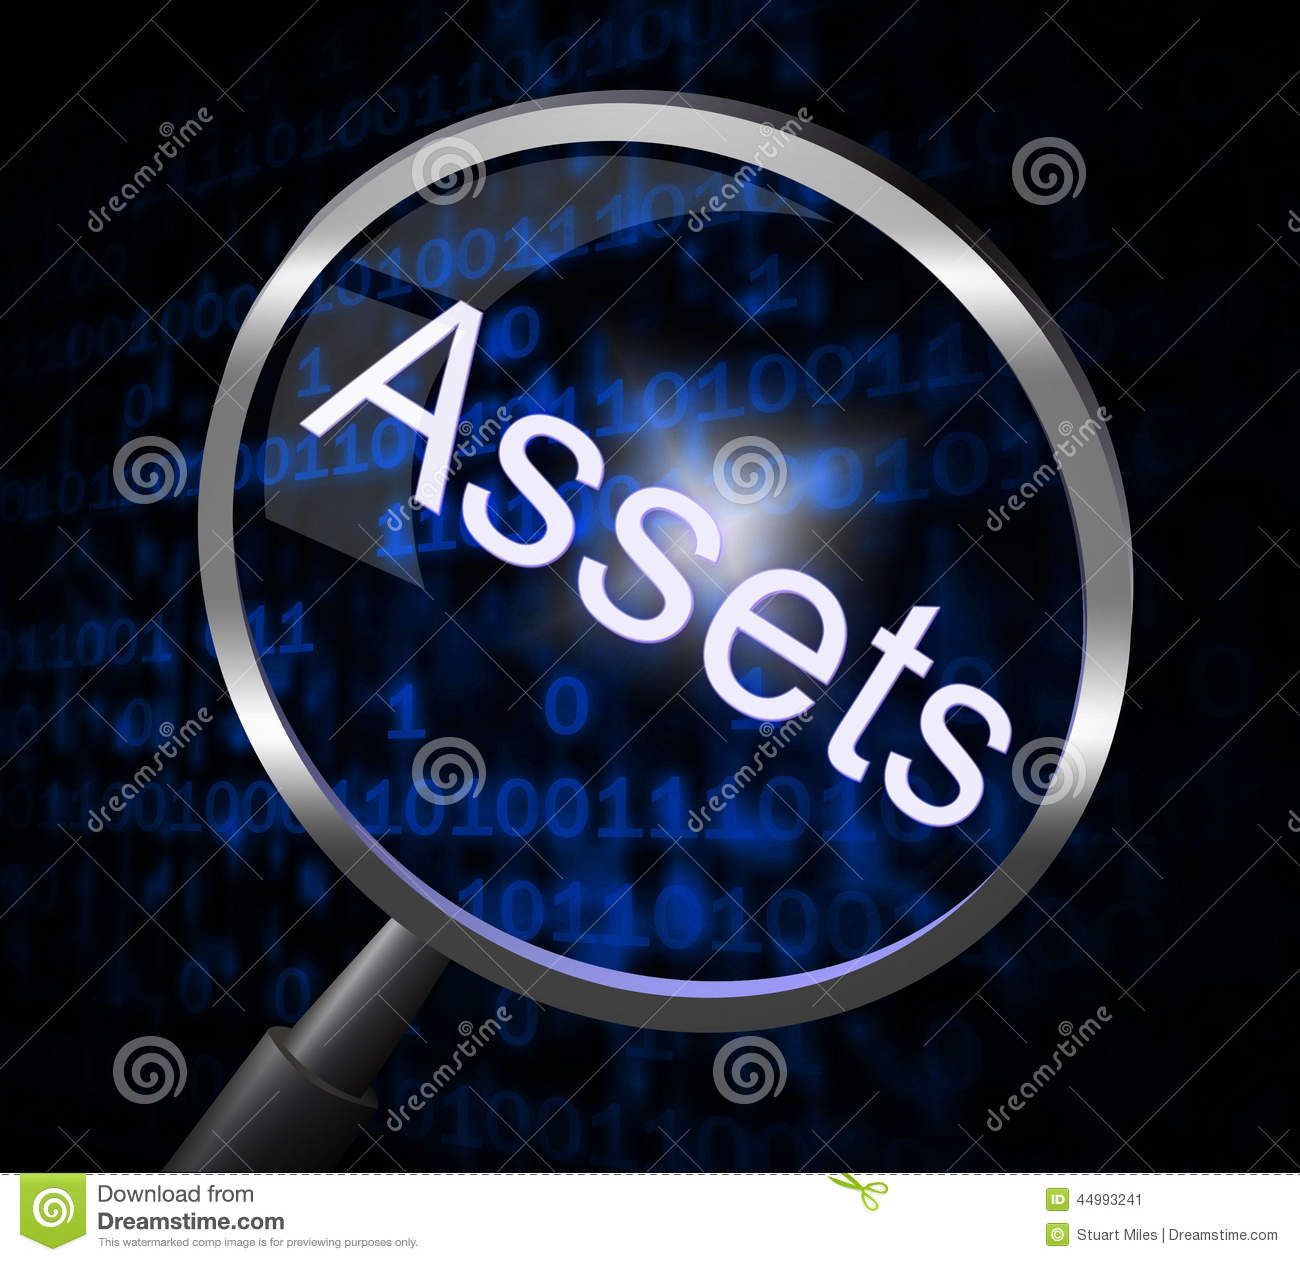 Assets Magnifier Indicates Valuables Searching And Search